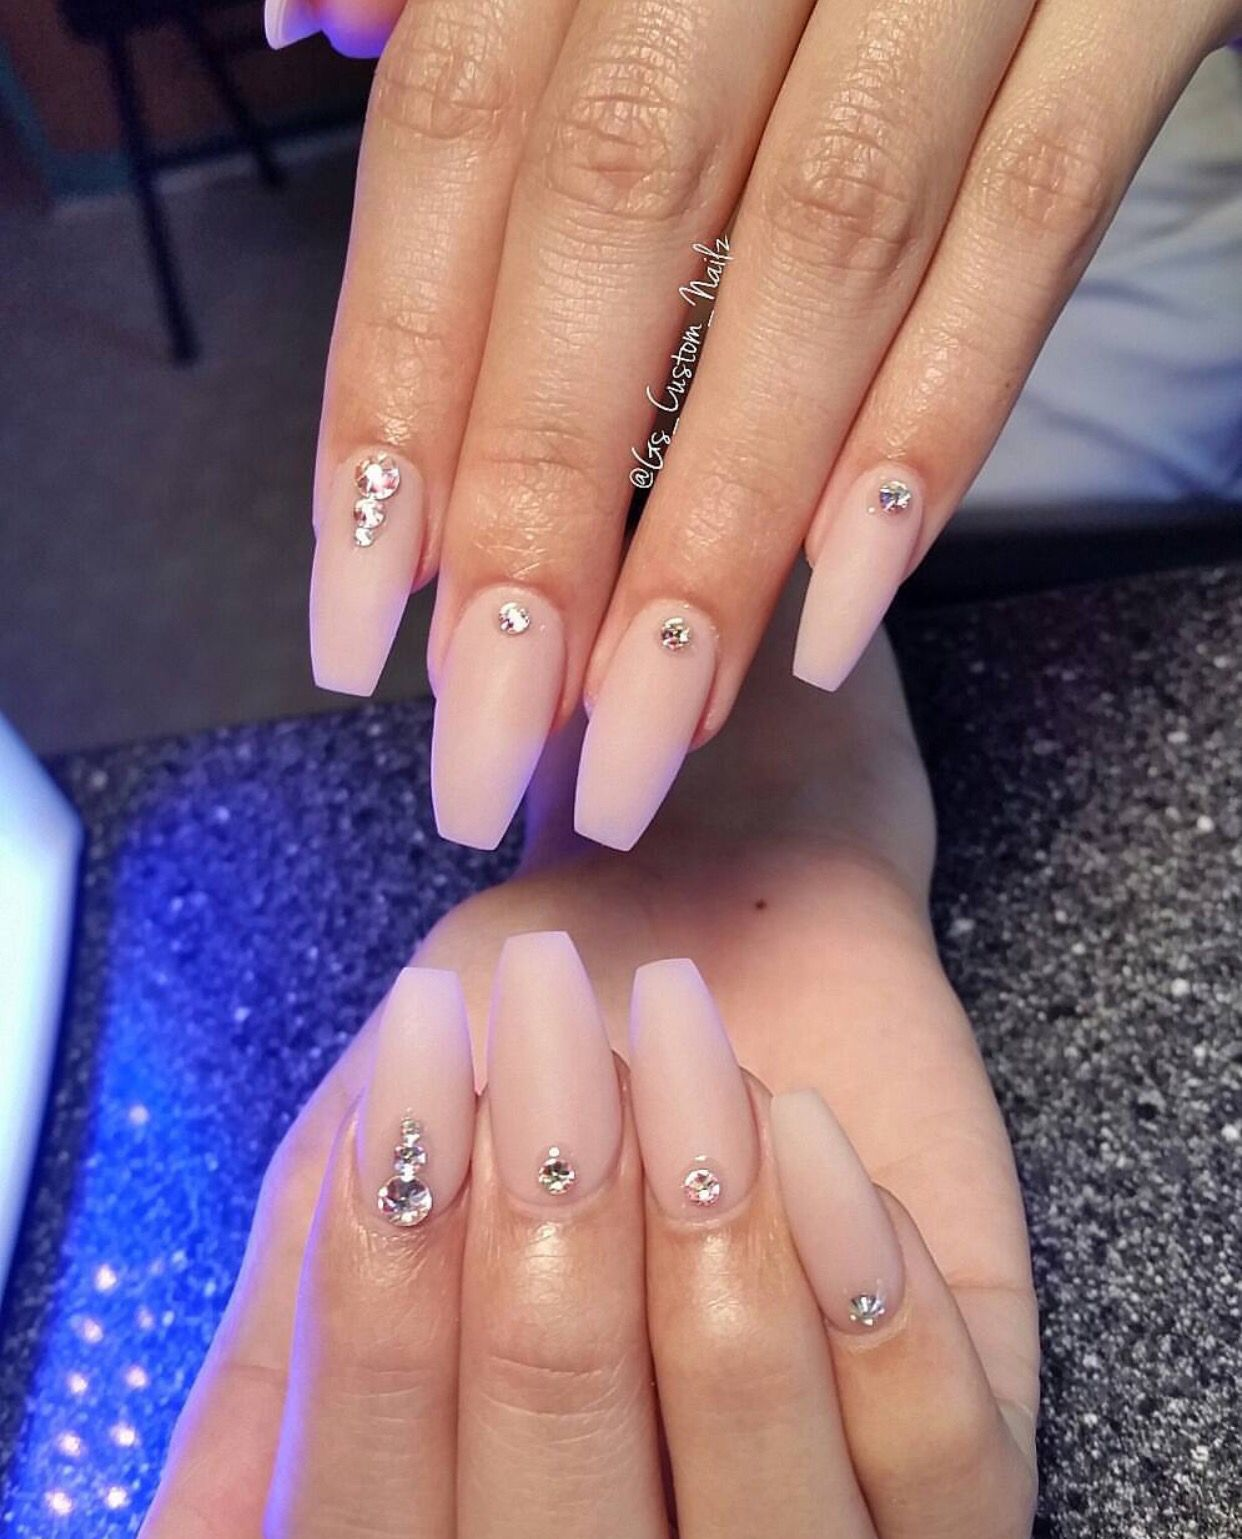 Coffin Nails With Jewel Accents Rhinestone Nails Nail Jewels Acrylic Nails Coffin